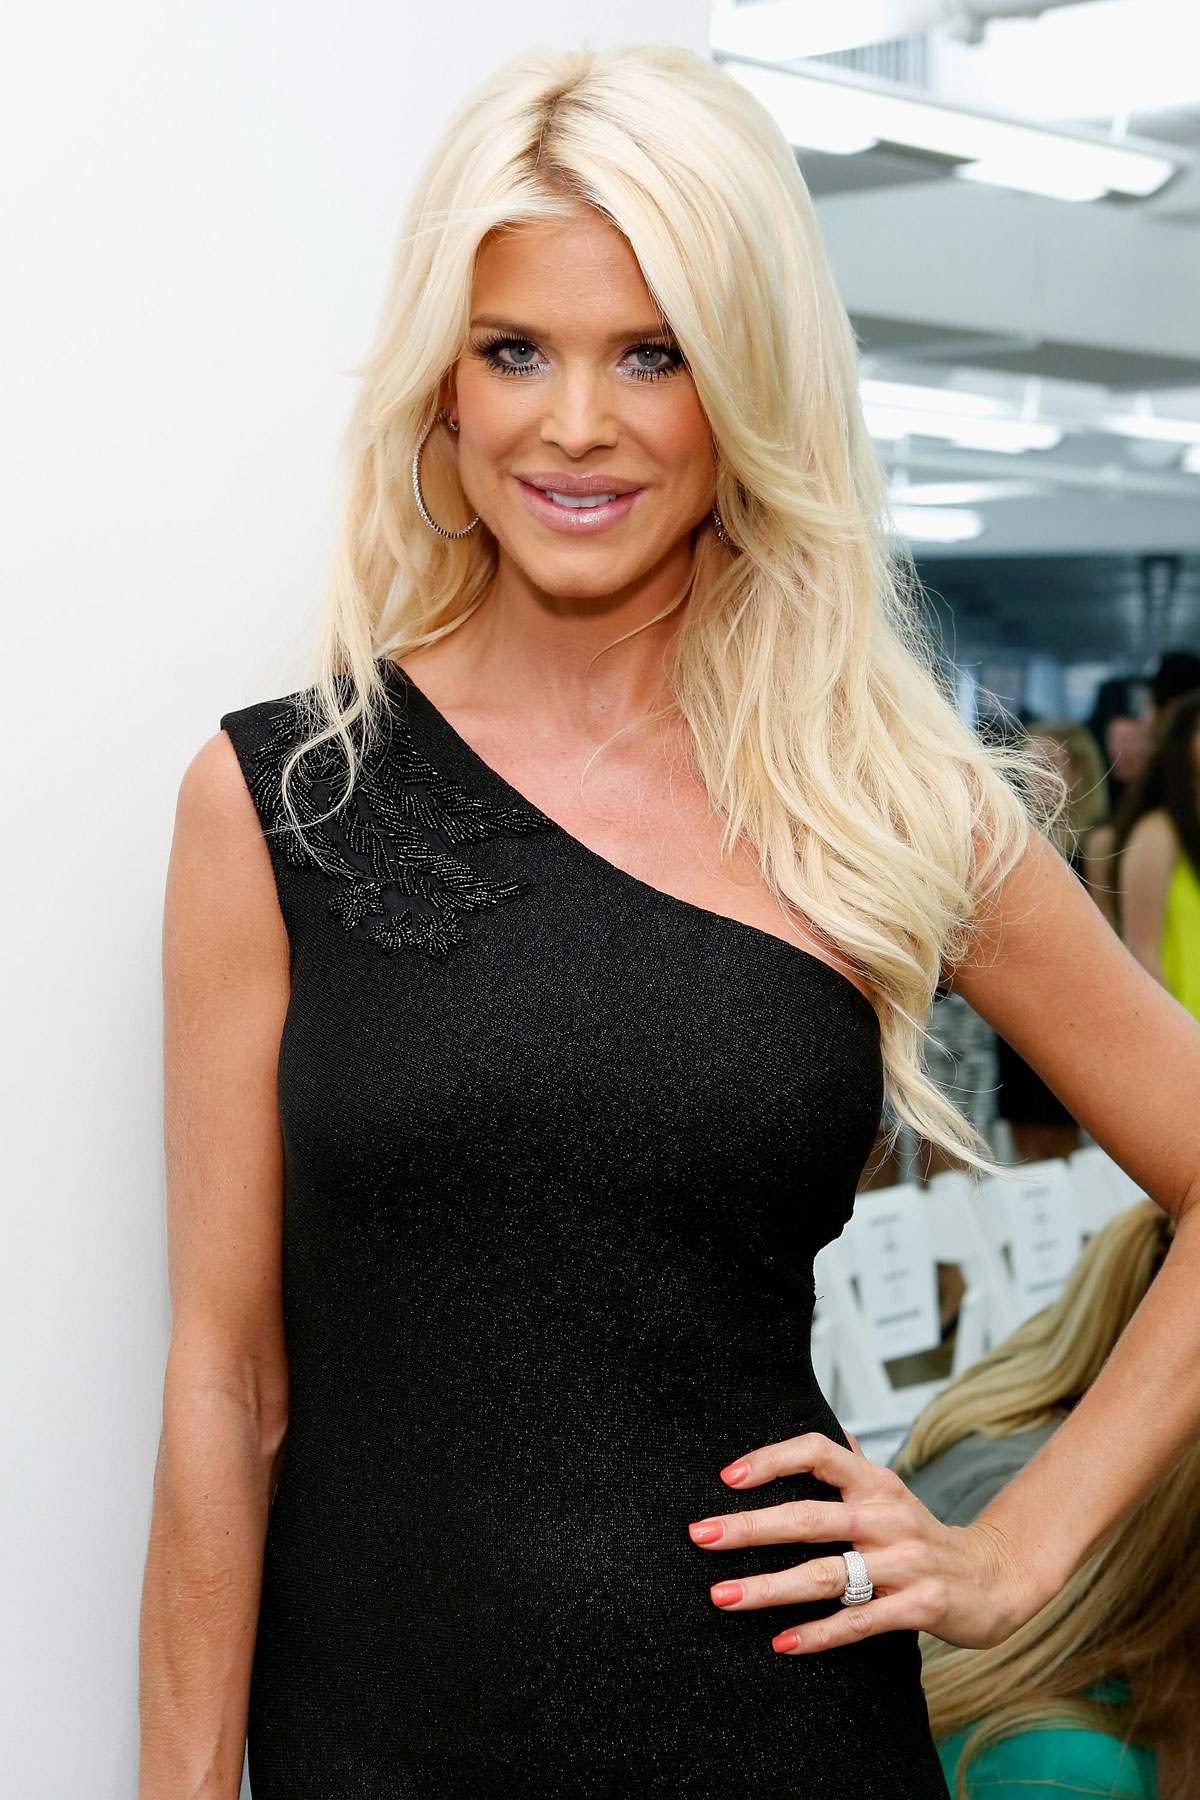 Victoria Silvstedt - Wallpaper